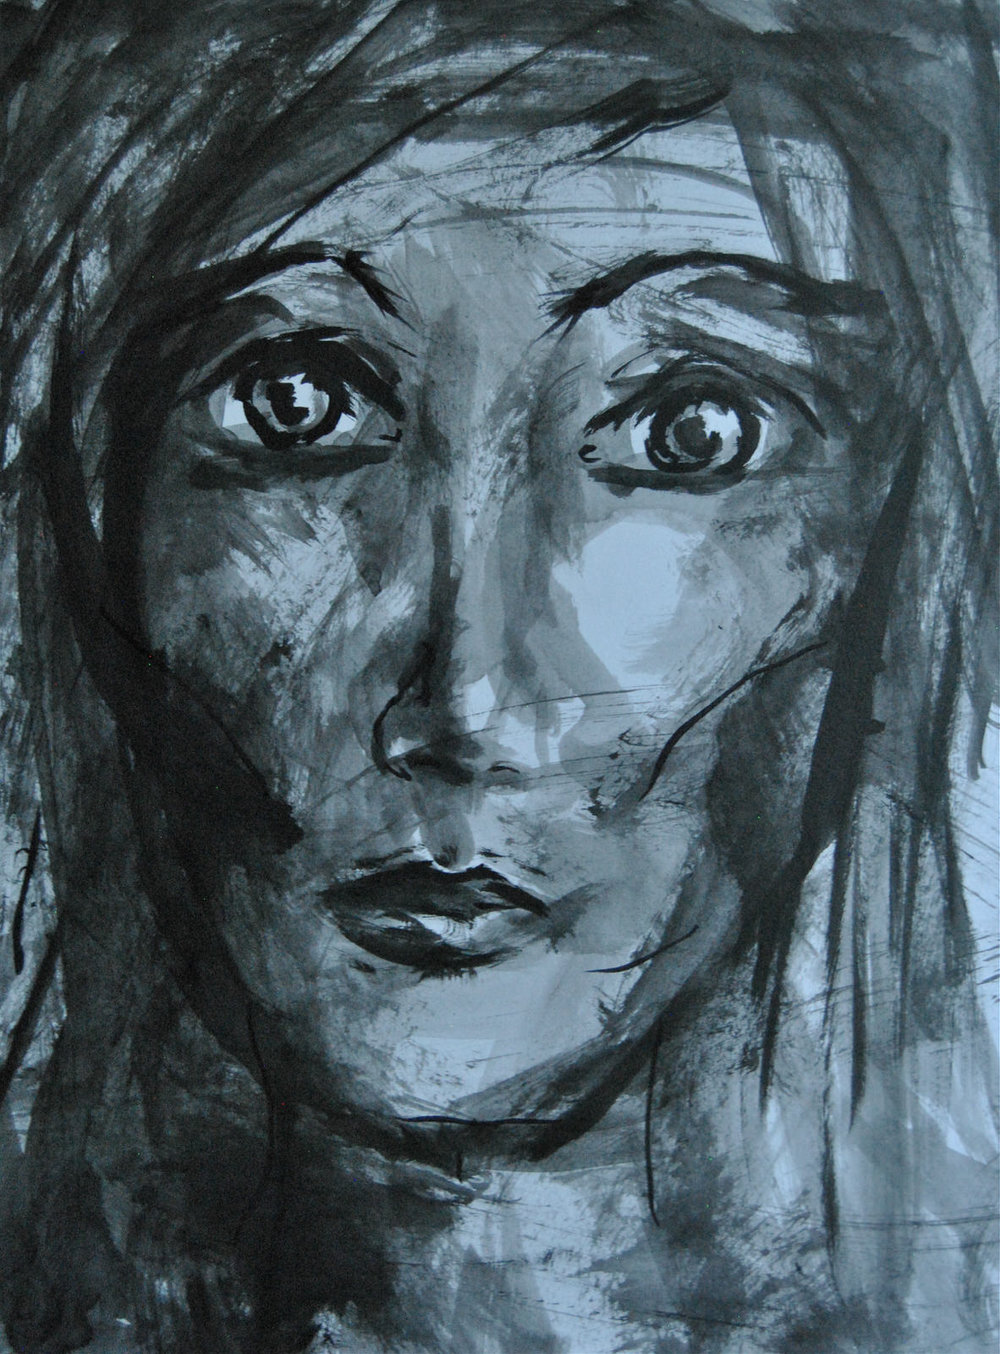 Indian Ink on Paper Board,297 x 420 mm, 14-10-15